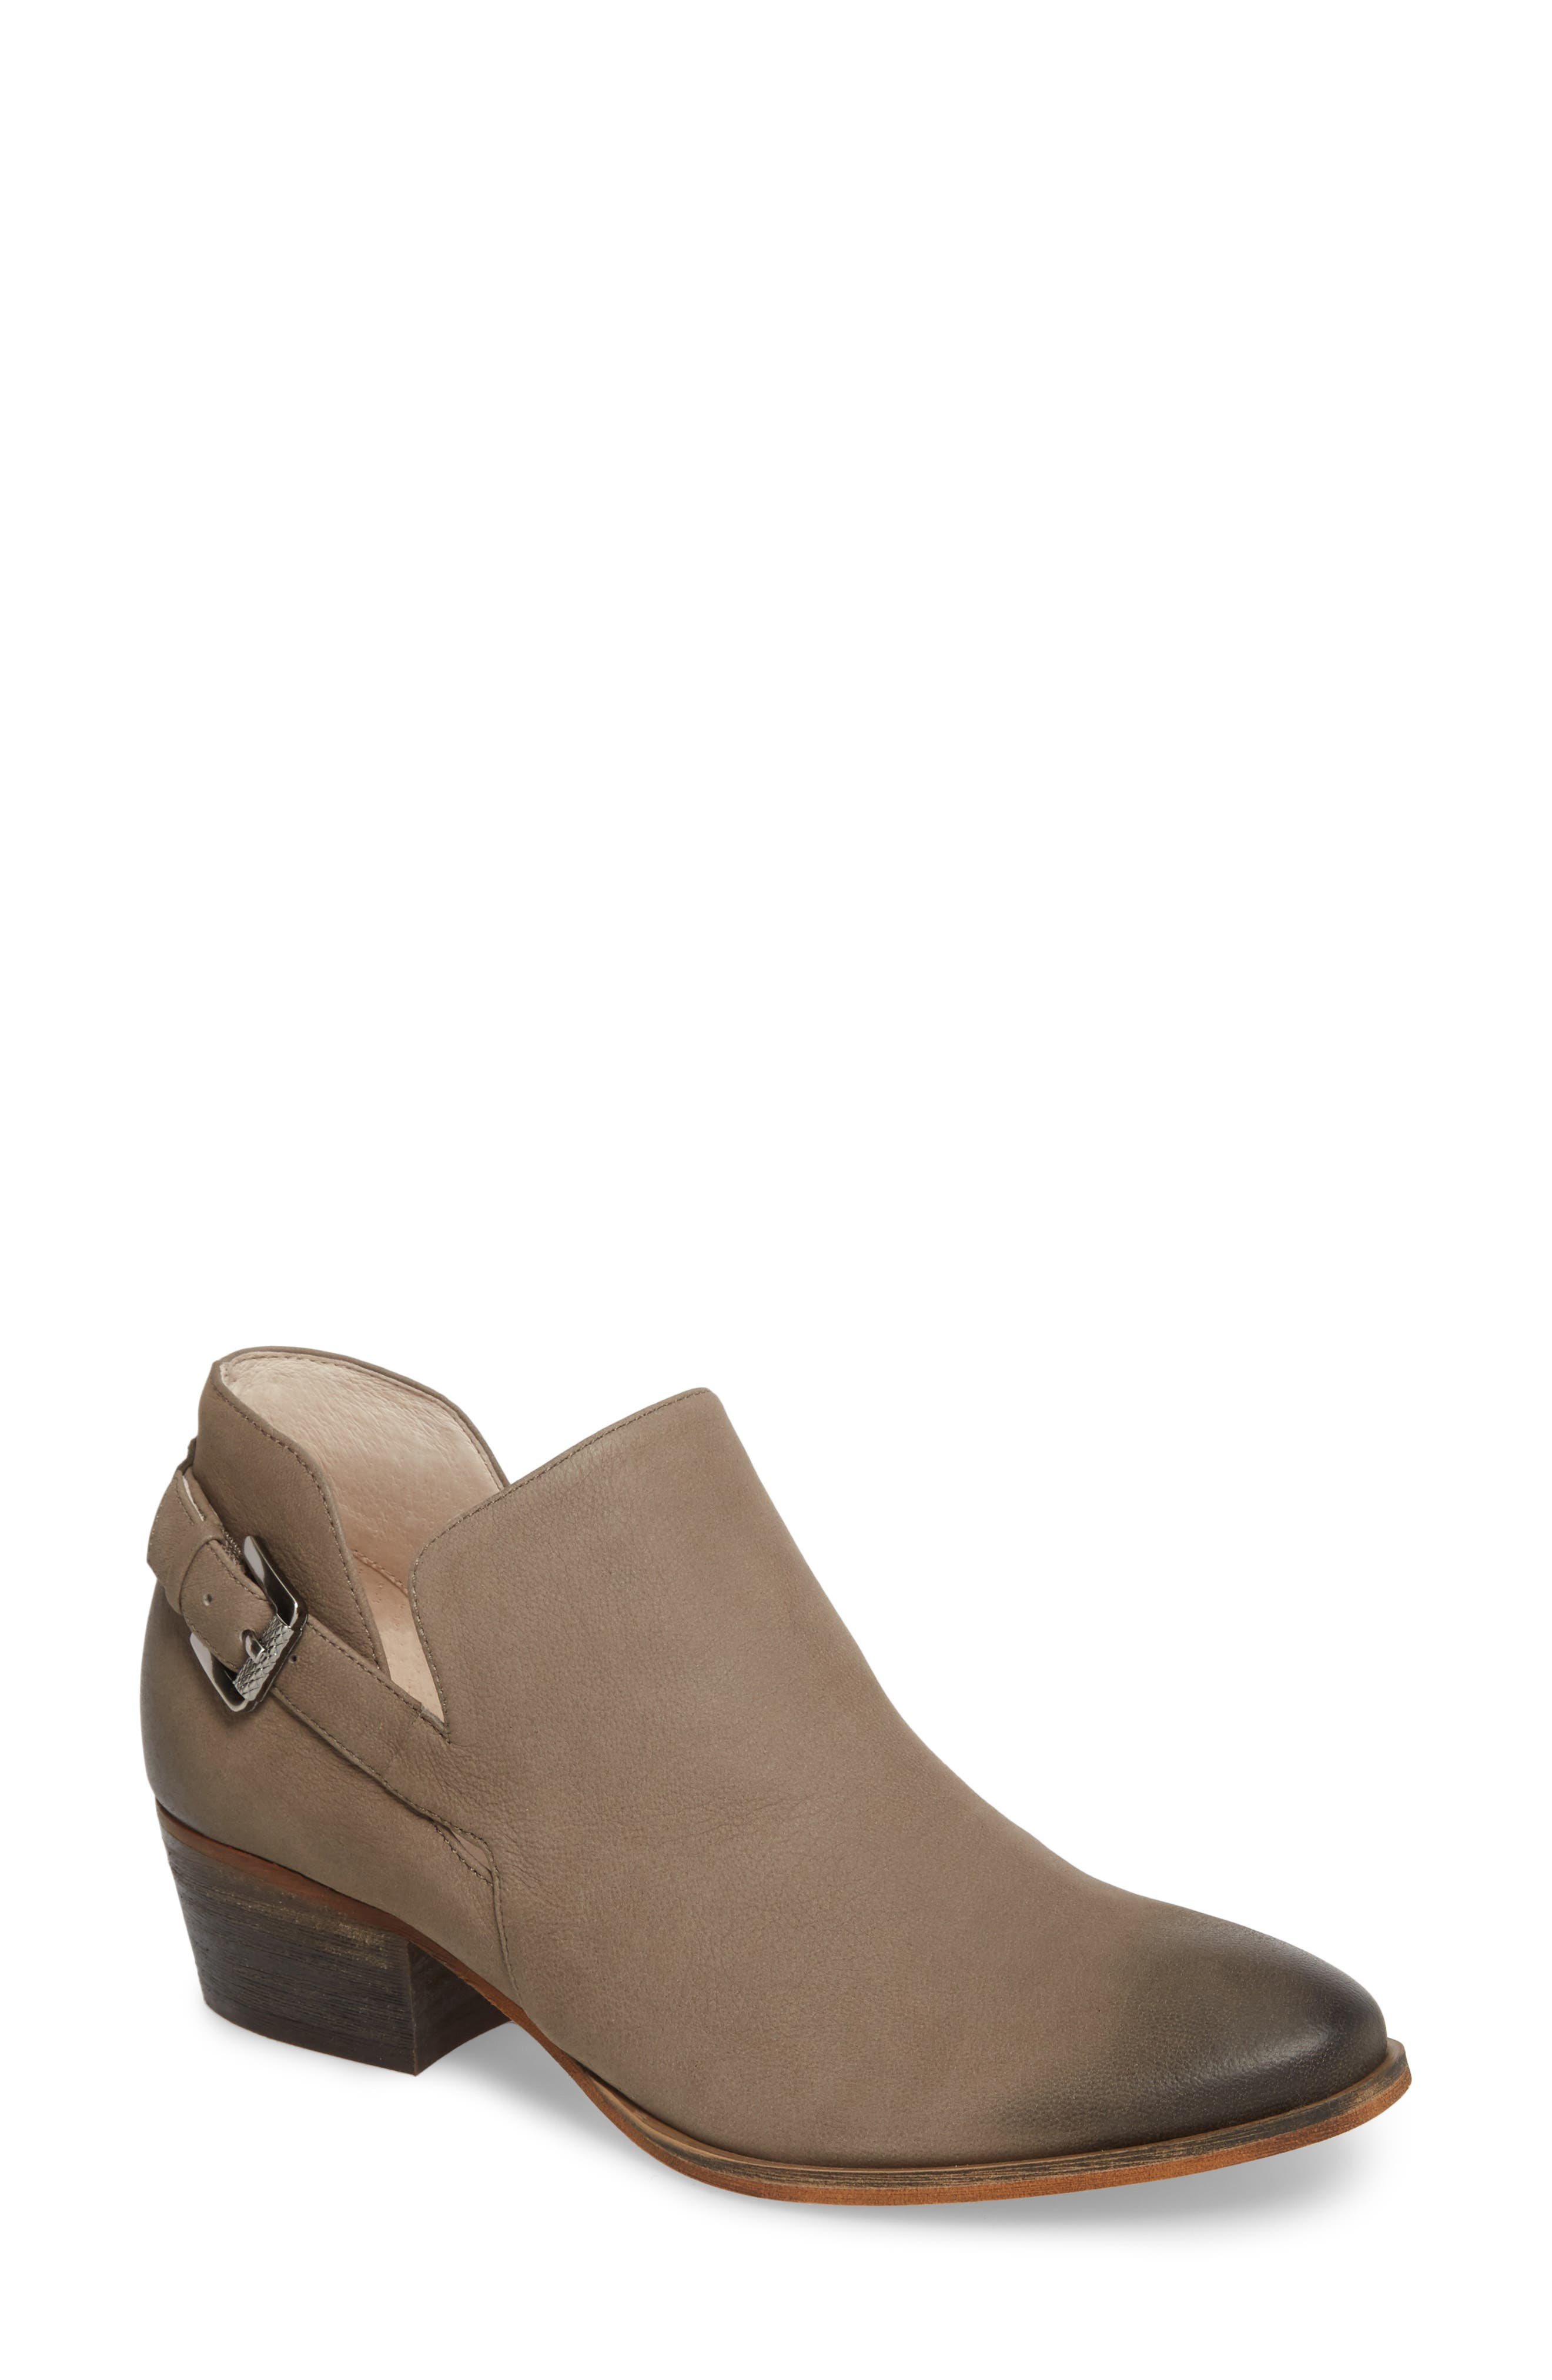 Toby Bootie,                             Main thumbnail 1, color,                             STONE OILED NUBUCK